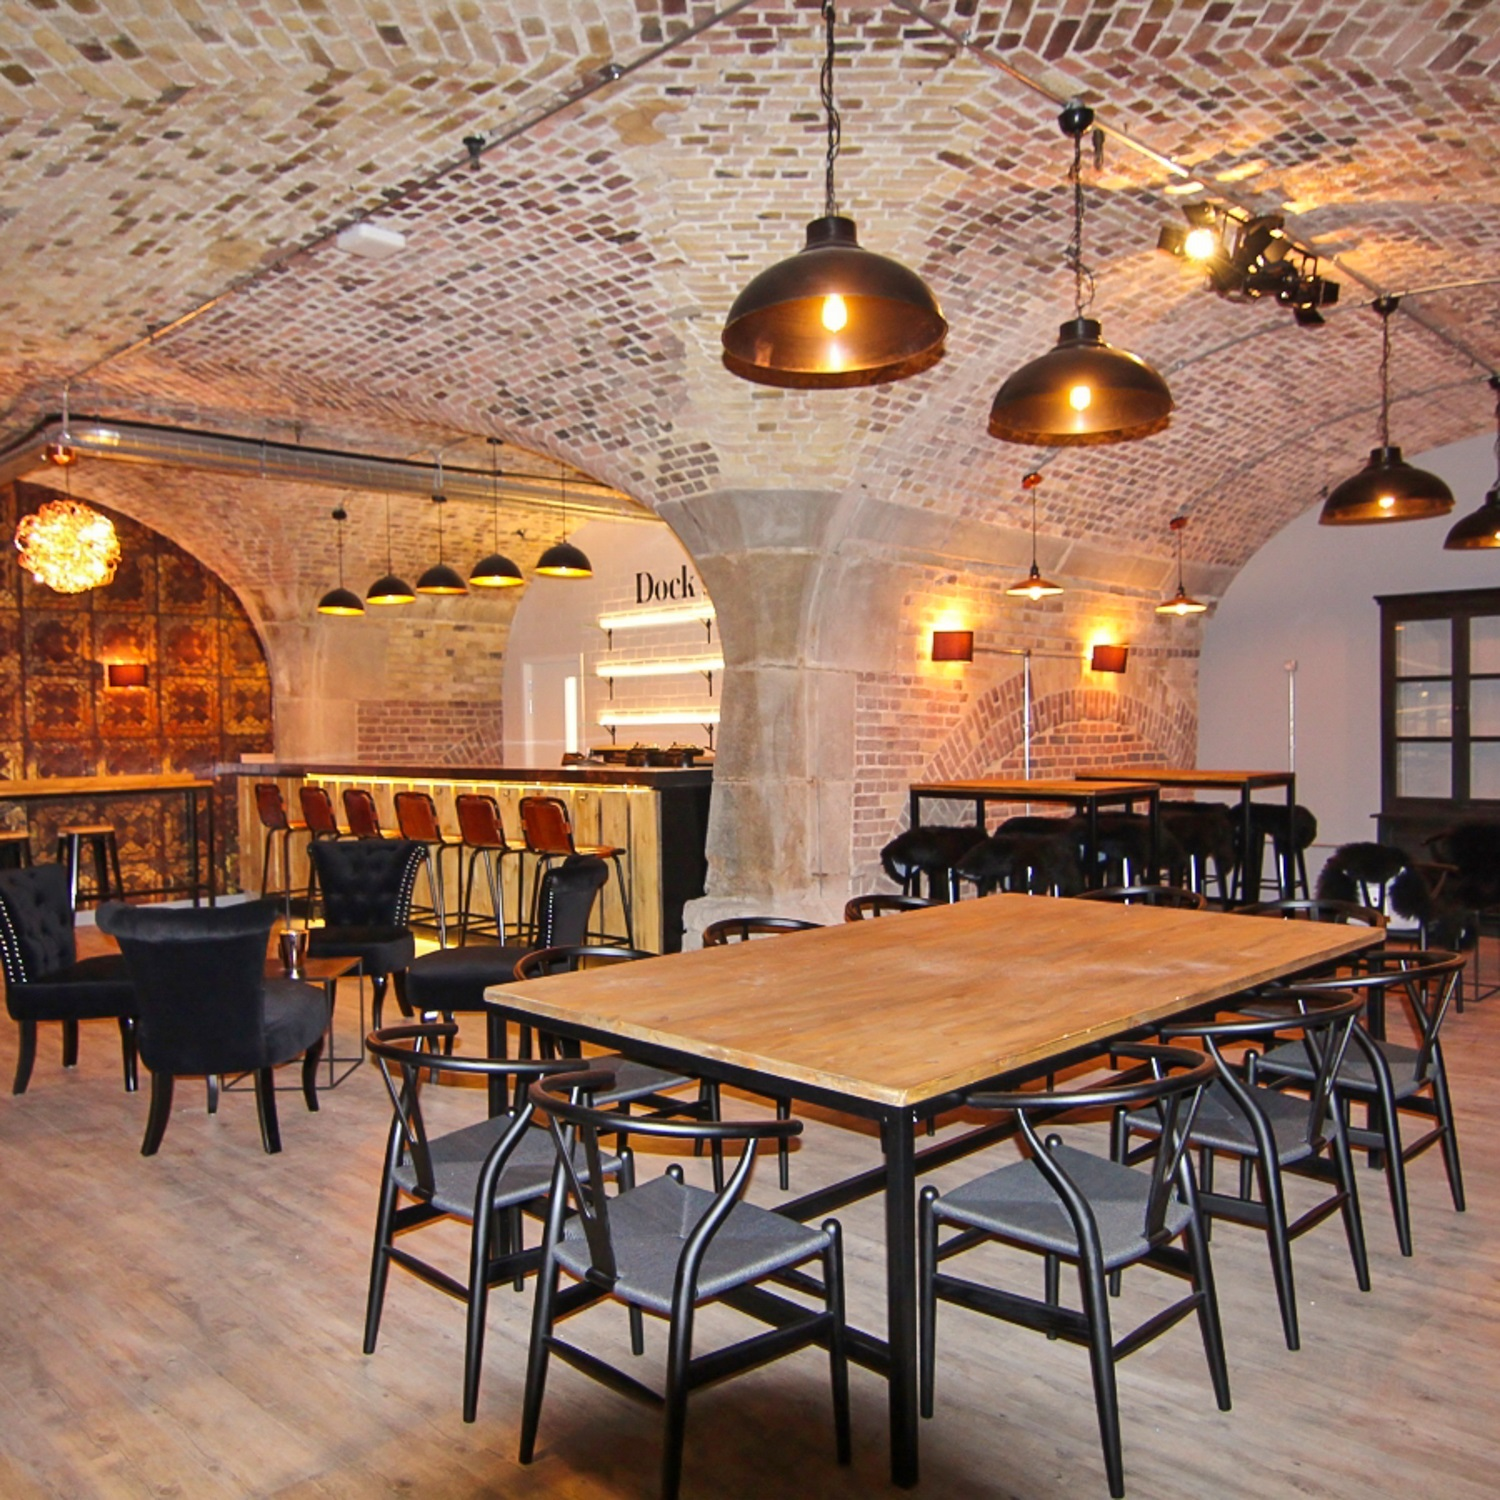 exposed brick room with tables and chairs